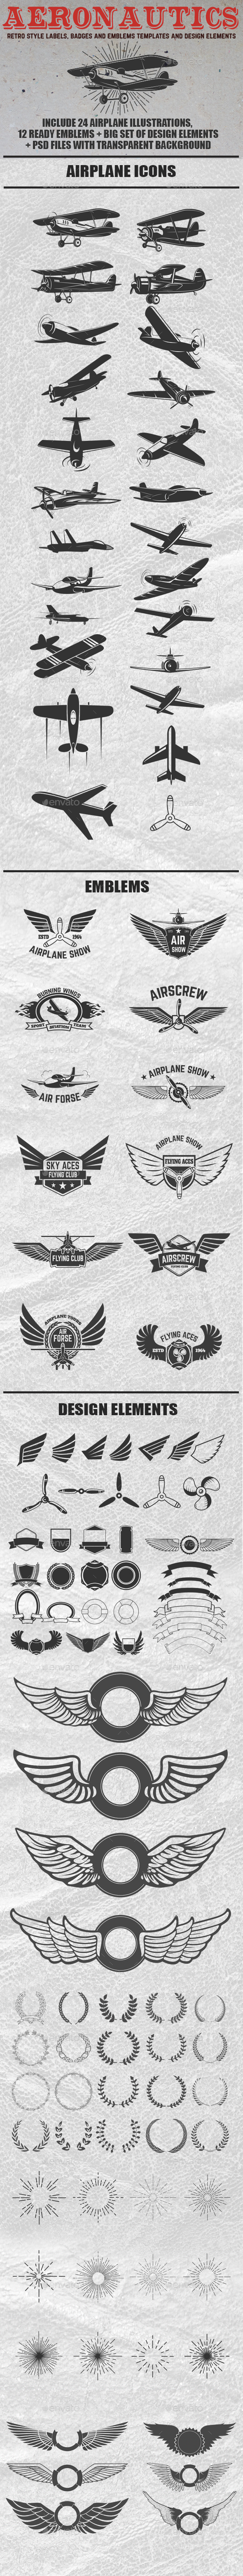 Retro Style Airplane Emblems and Design Elements - Retro Technology